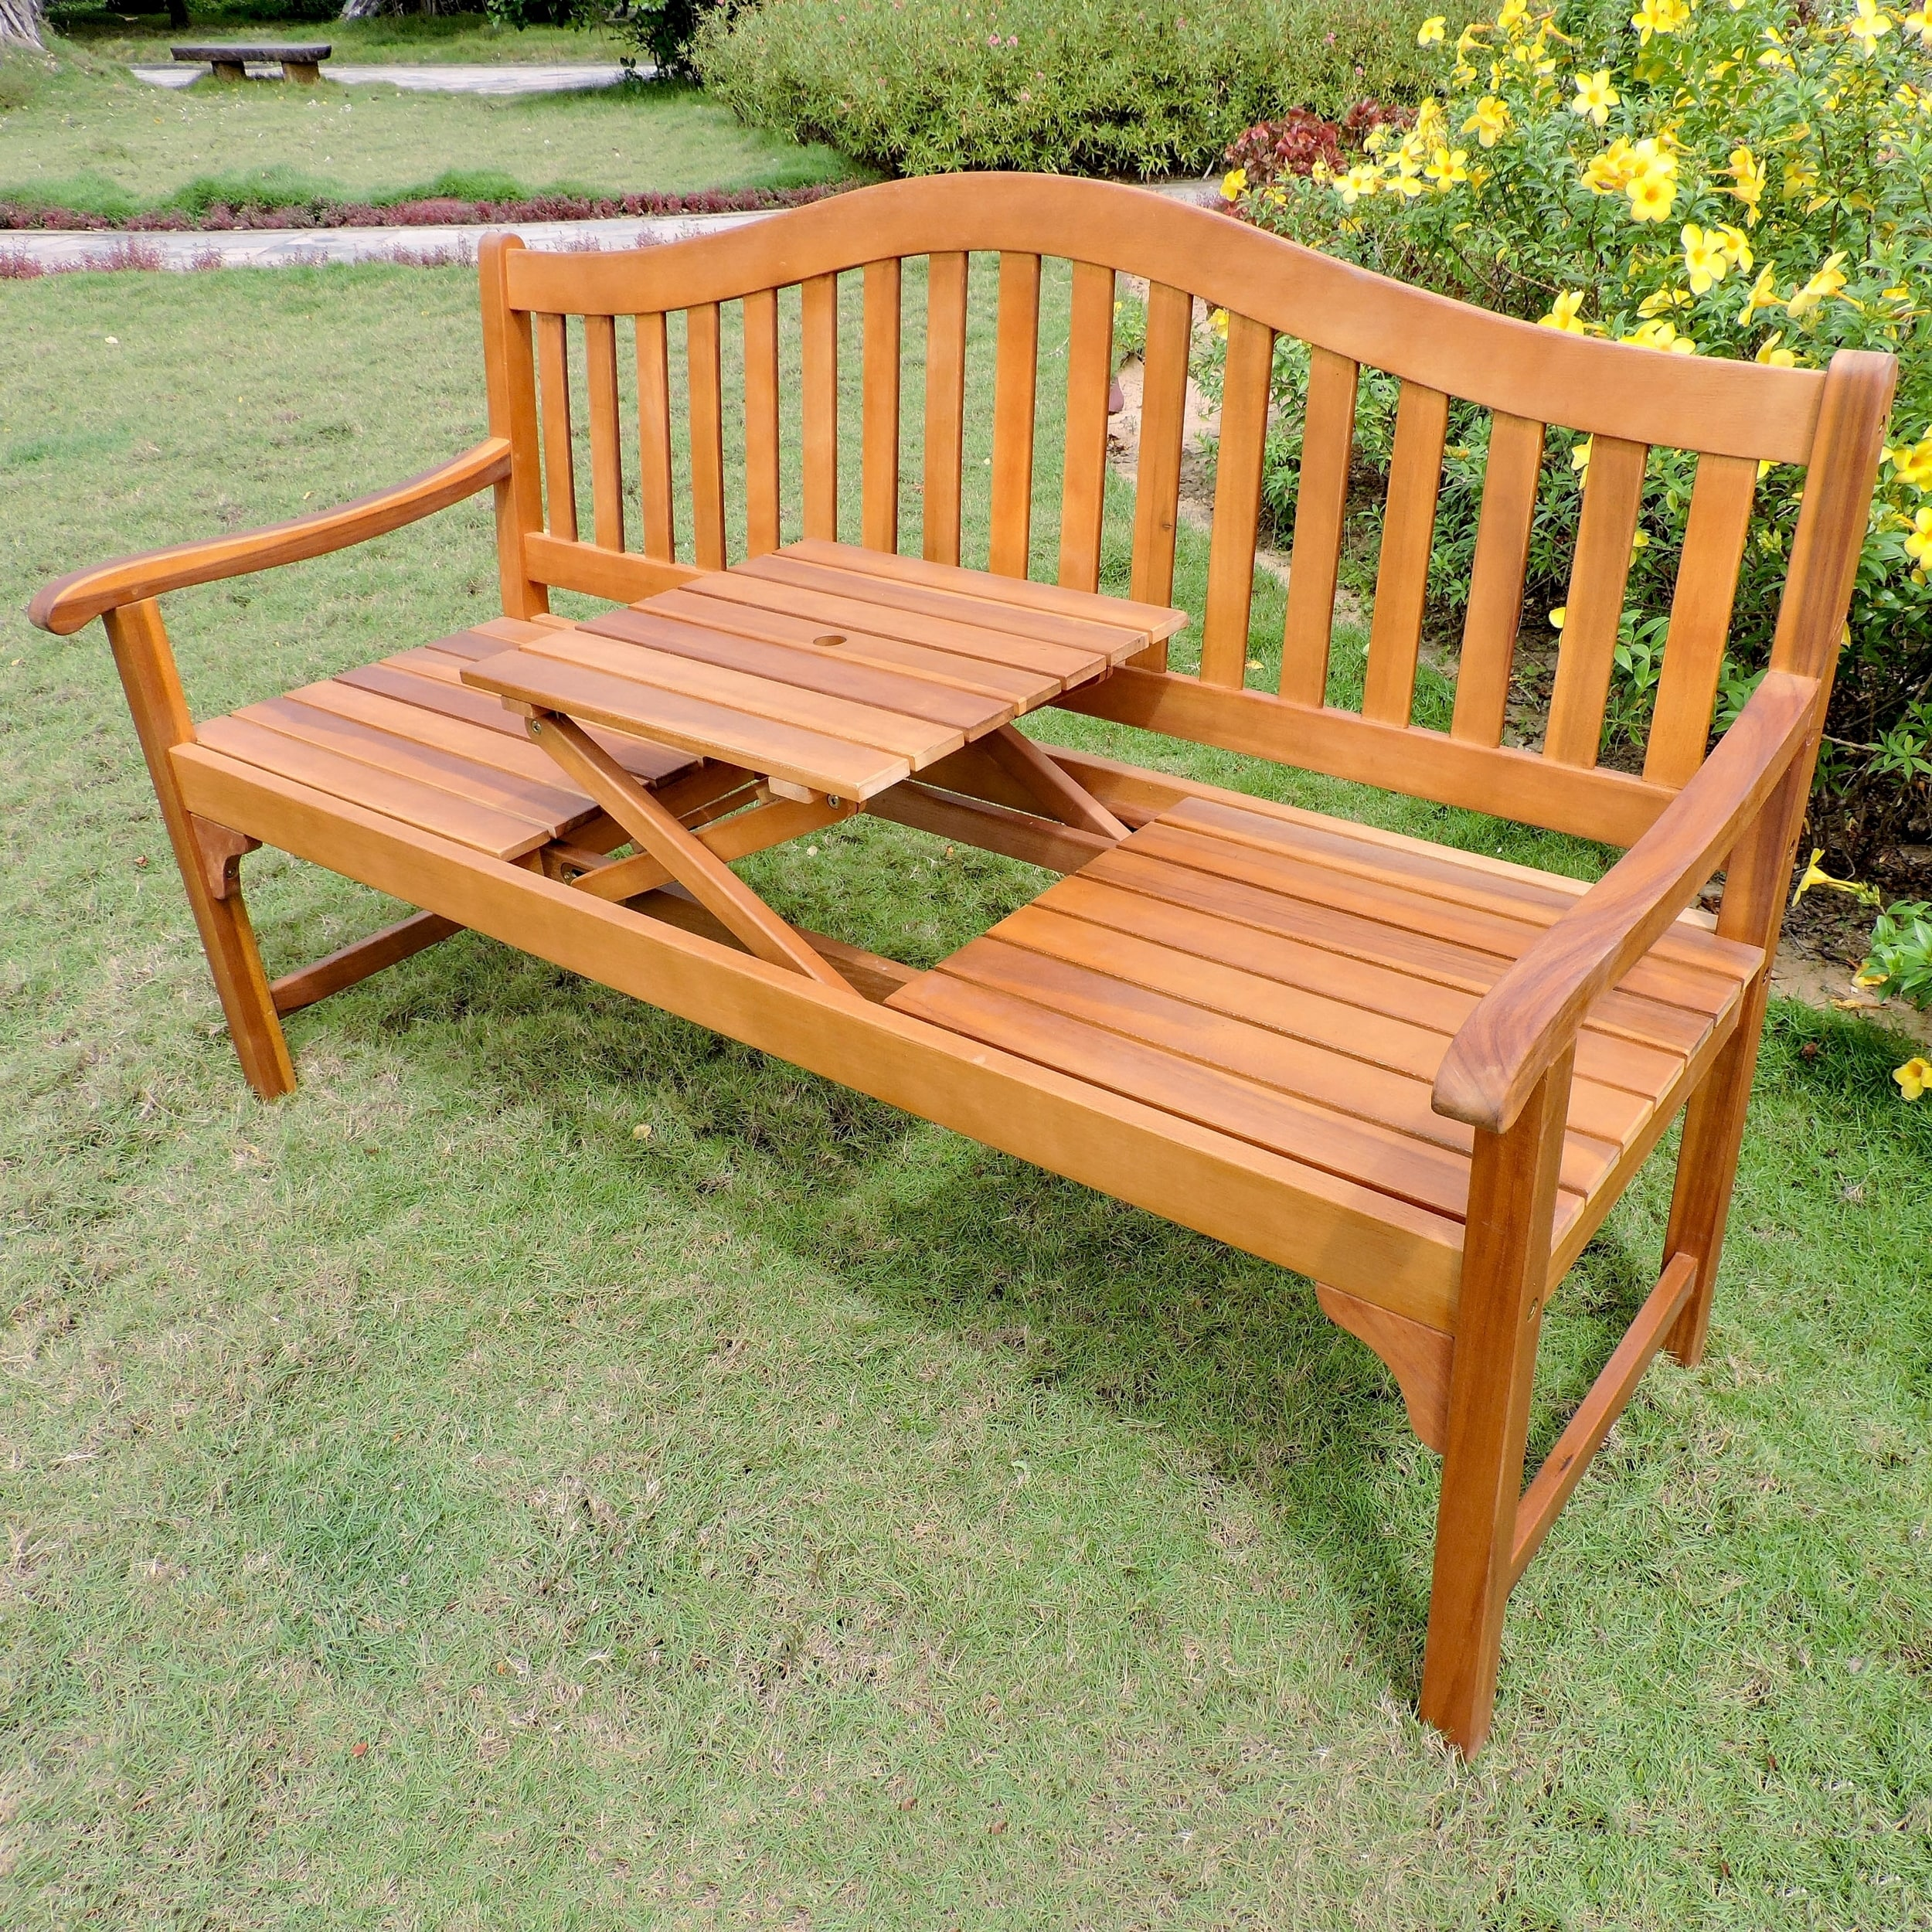 Awesome International Caravan Royal Fiji 5 Foot Garden Bench With Table   Free  Shipping Today   Overstock   26485830